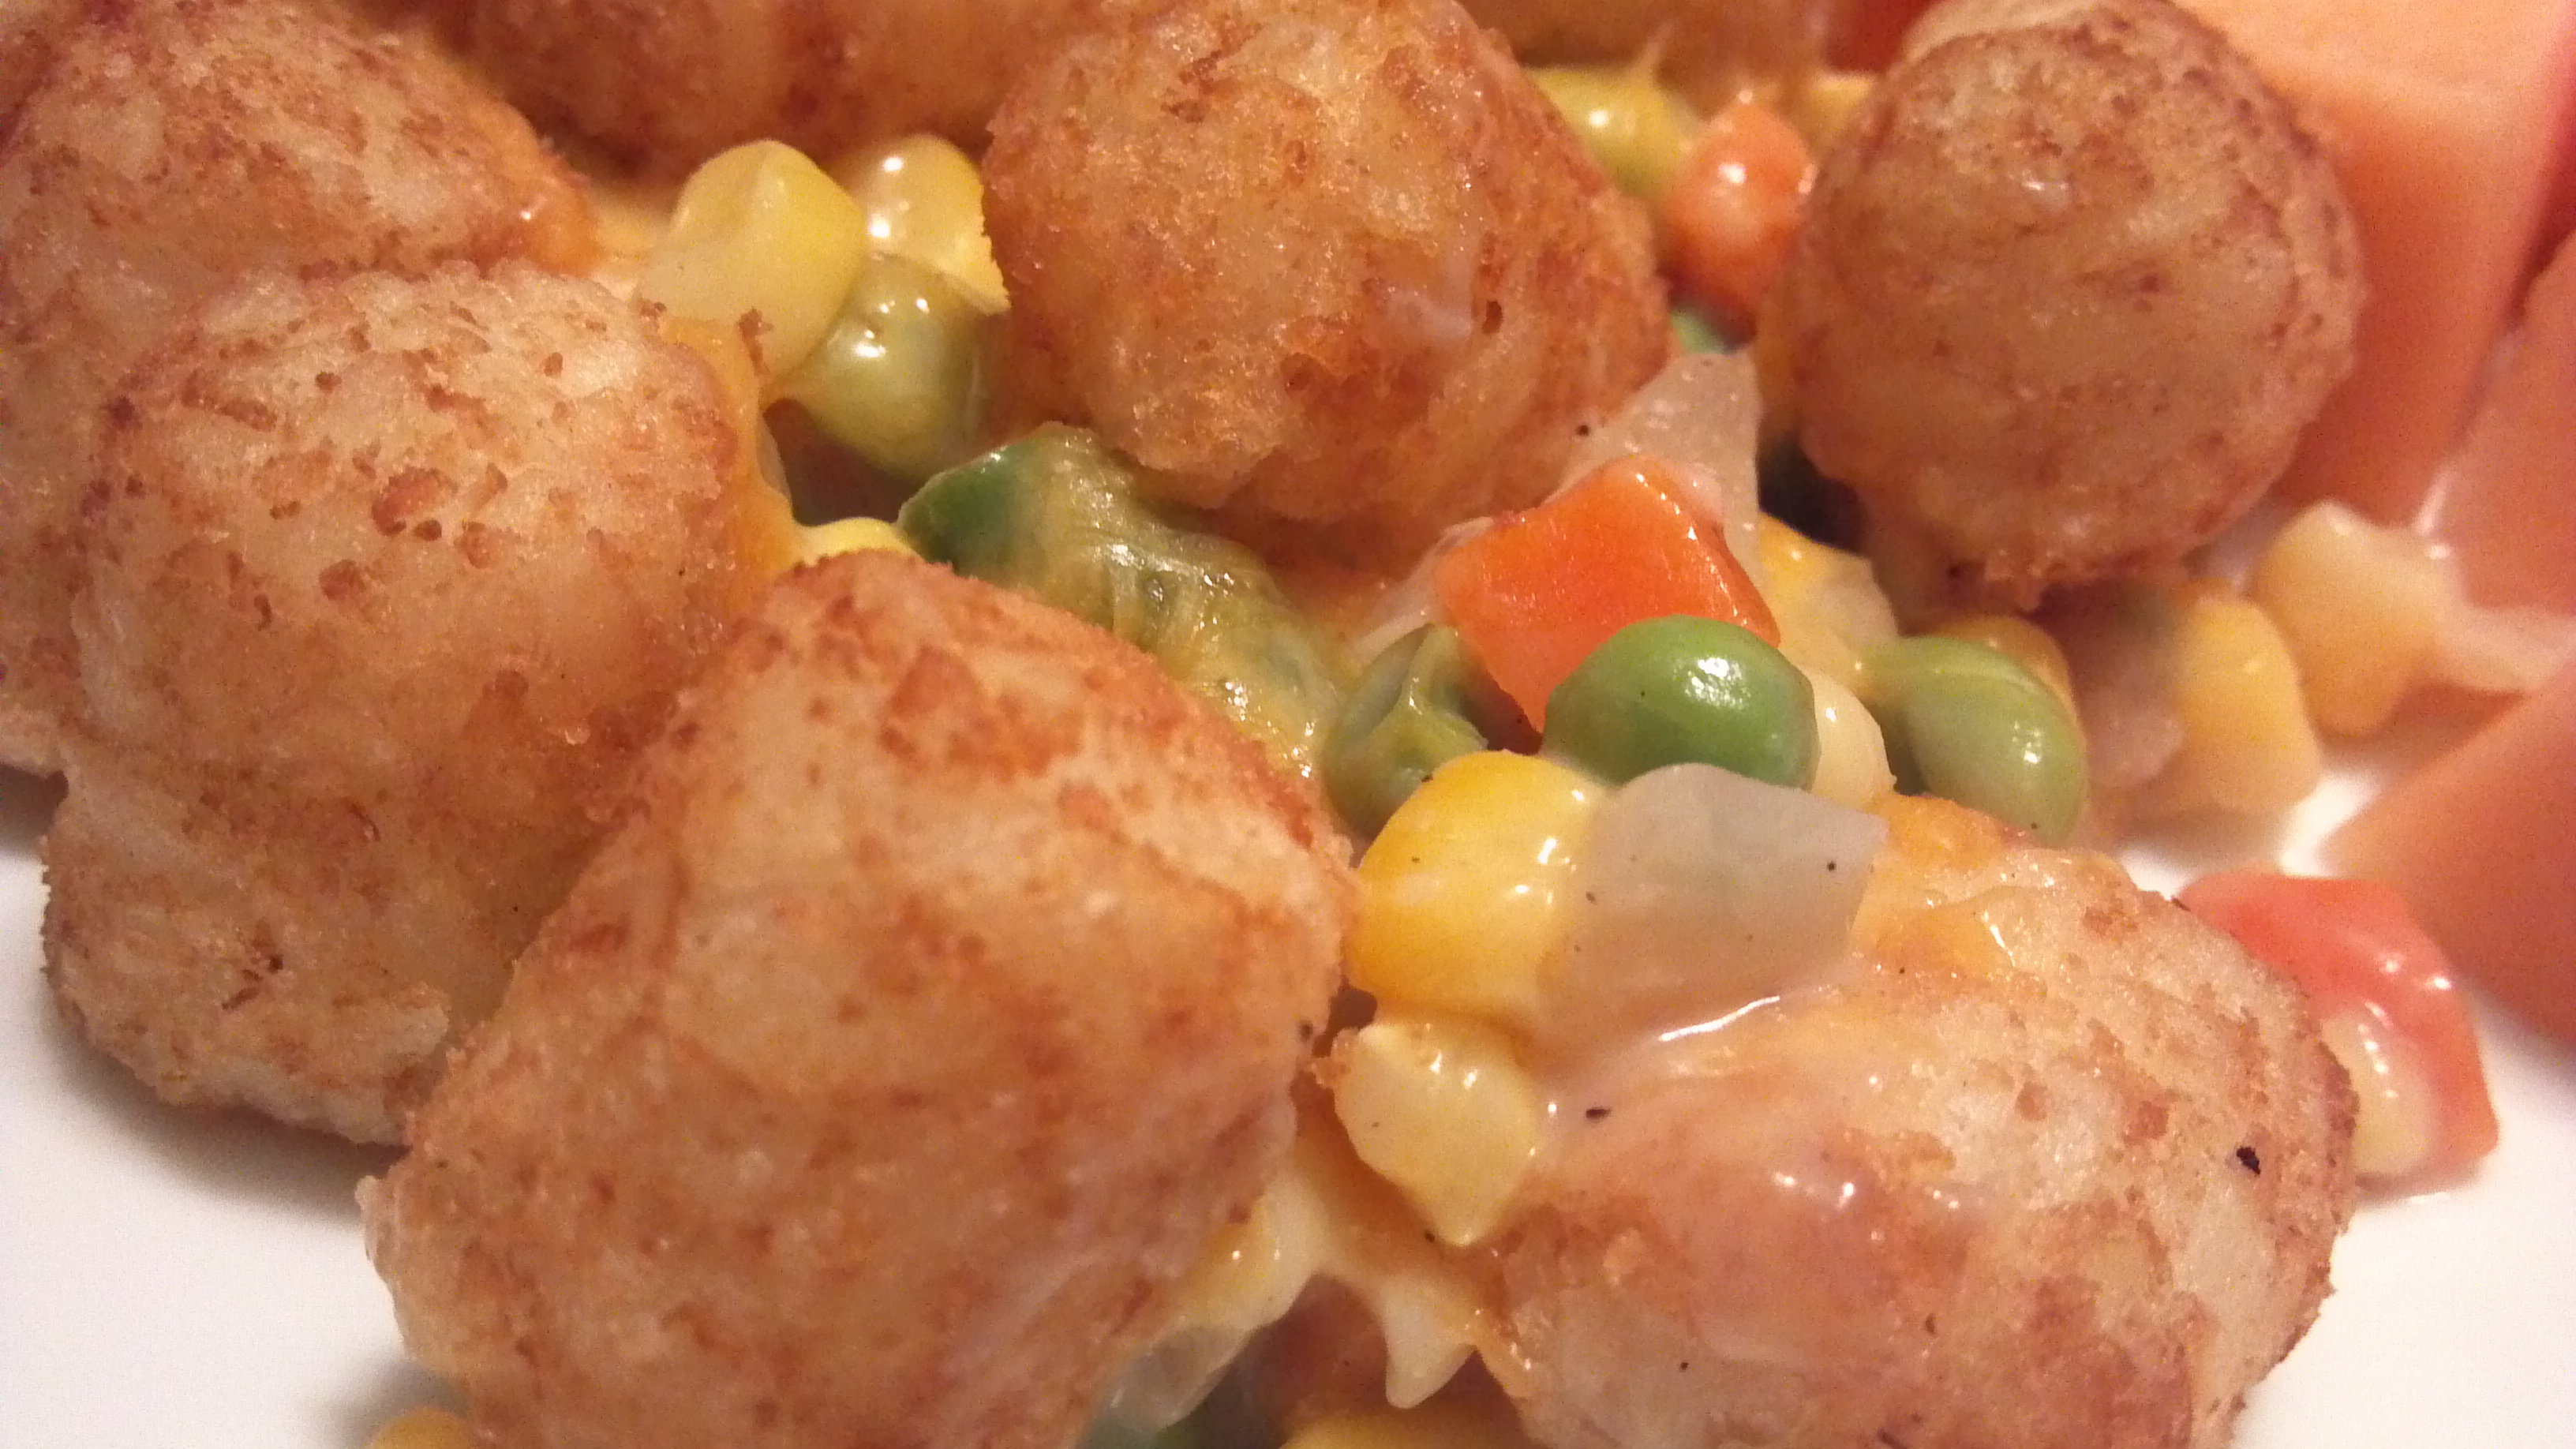 tater tot casserole 2 - Clean Eating Veggie Girl